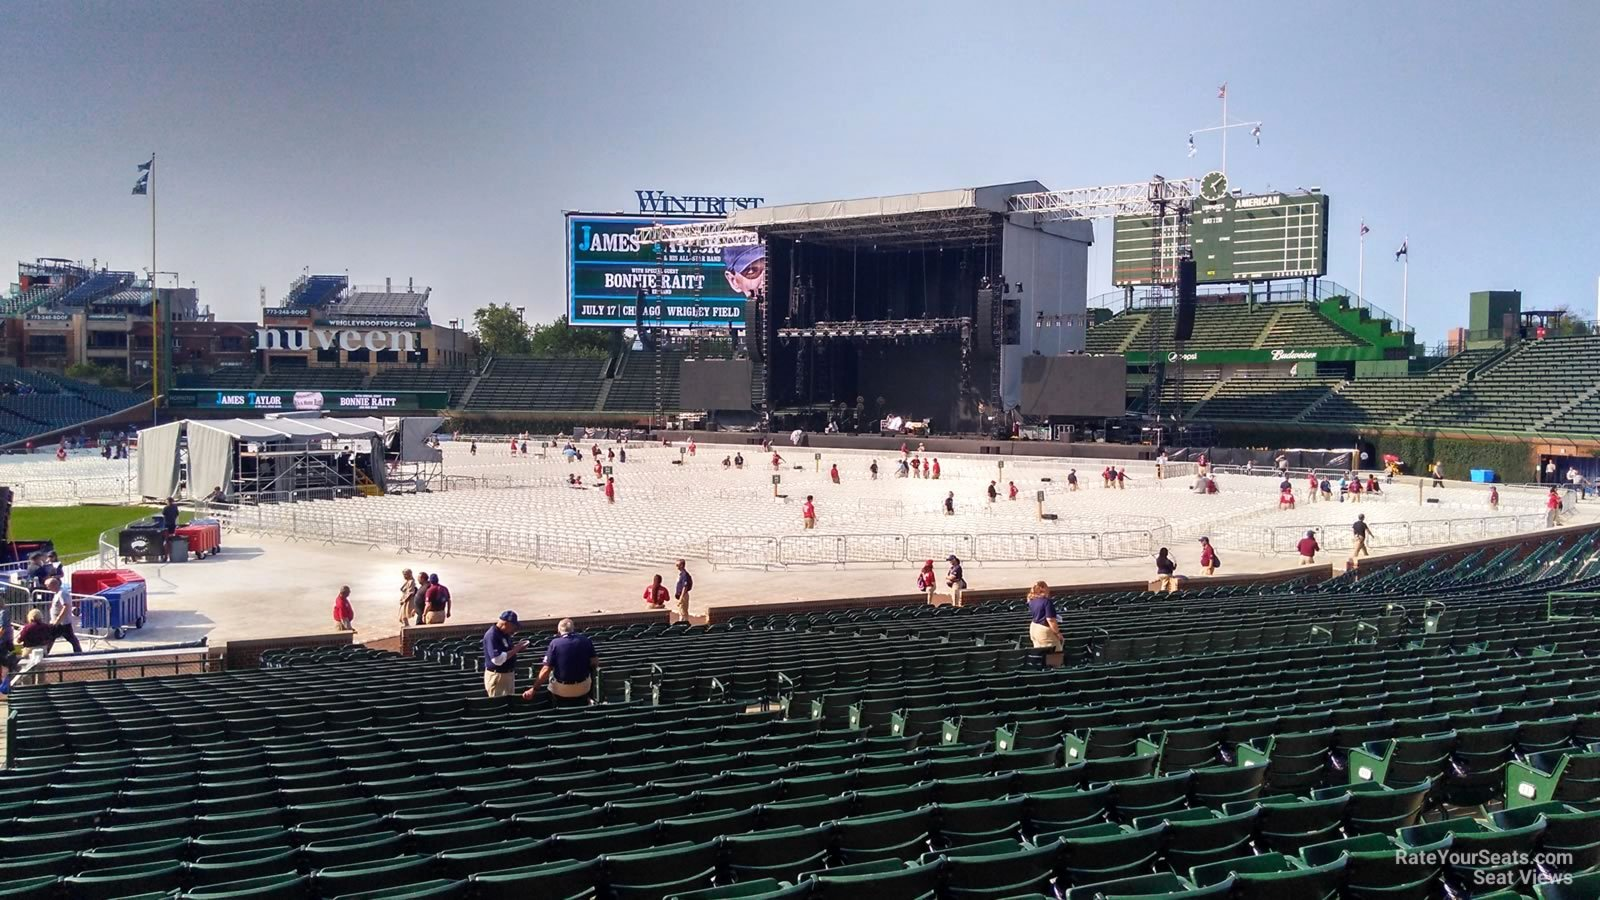 Wrigley Field Concert Seating Chart with Seat Numbers Awesome Wrigley Field Section 131 Concert Seating Rateyourseats